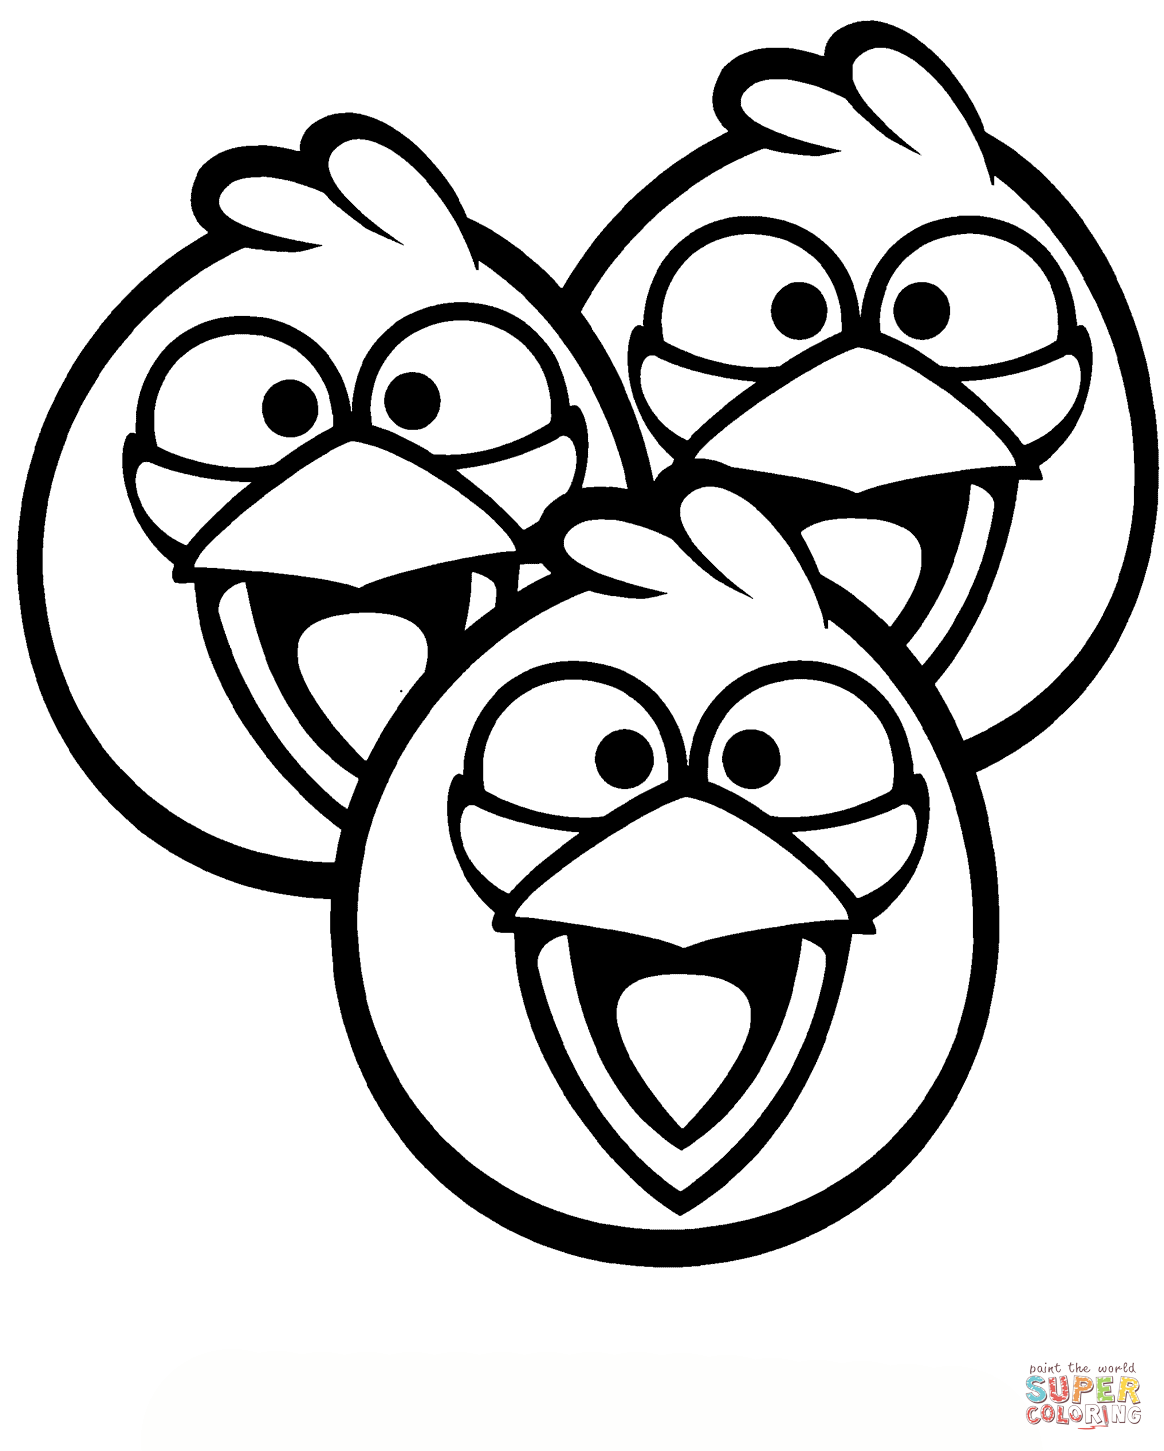 angry birds pictures to color and print angry birds coloring pages free printable coloring pages birds color angry pictures and print to